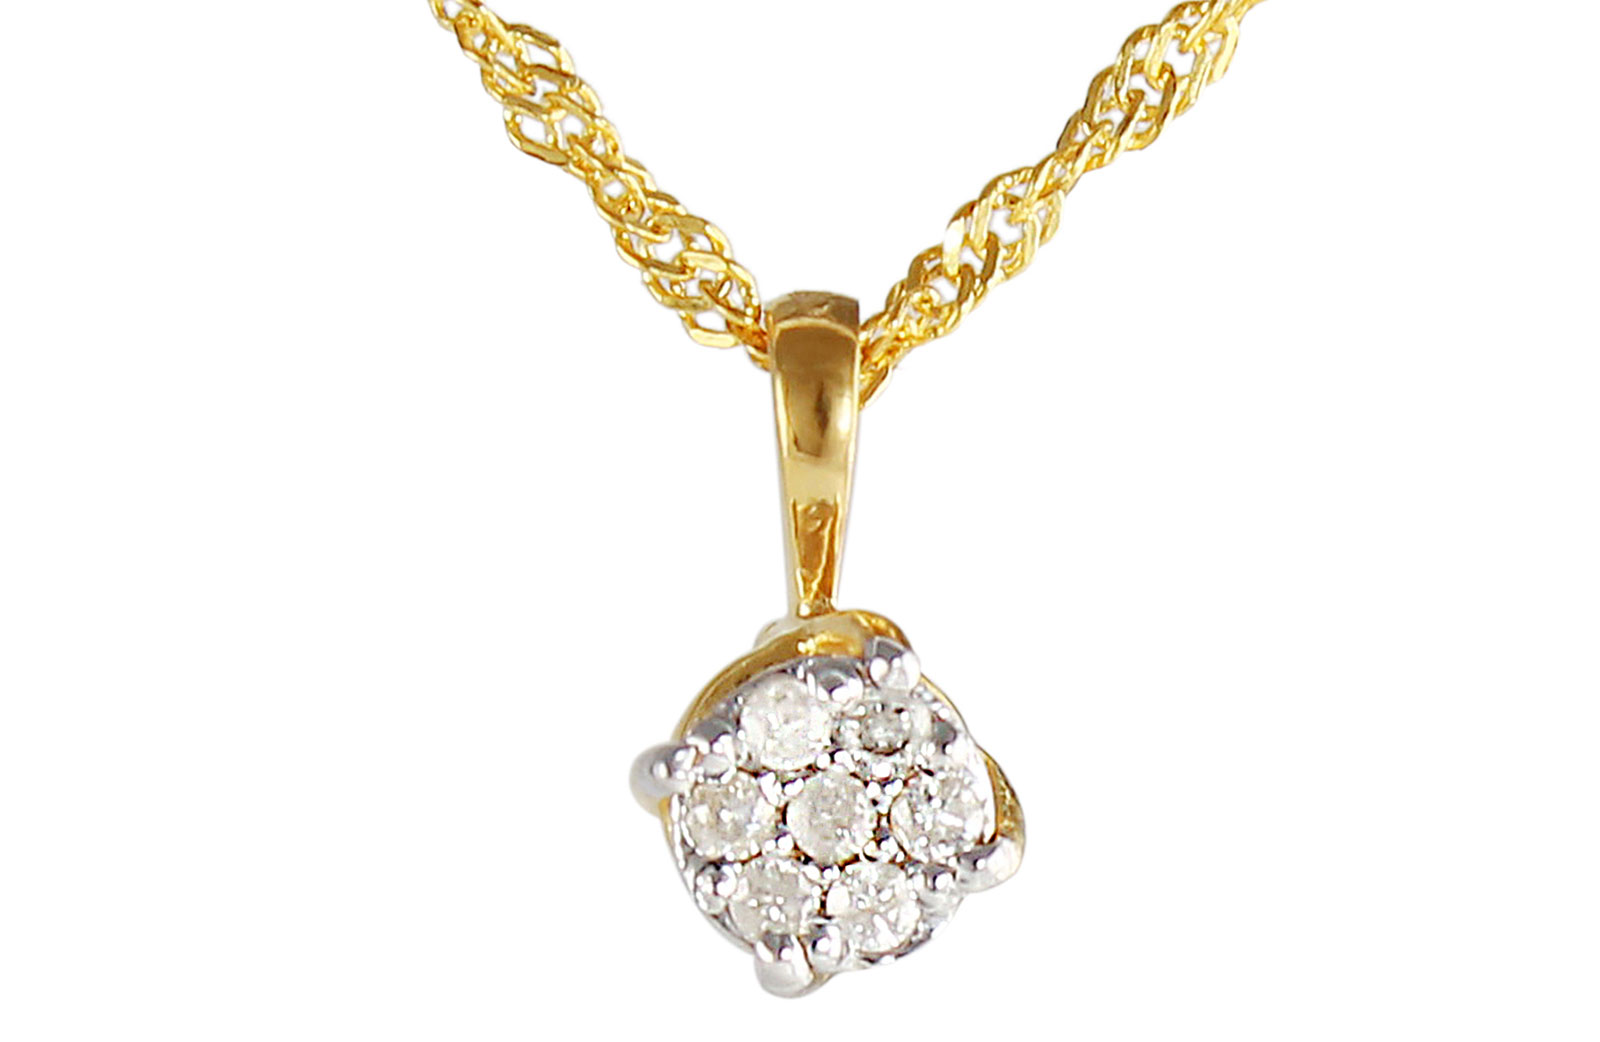 Vera Perla Jewels 22K Solid Gold 0.7cts Twisted Solitaire Pendant + 18K Chain Necklace